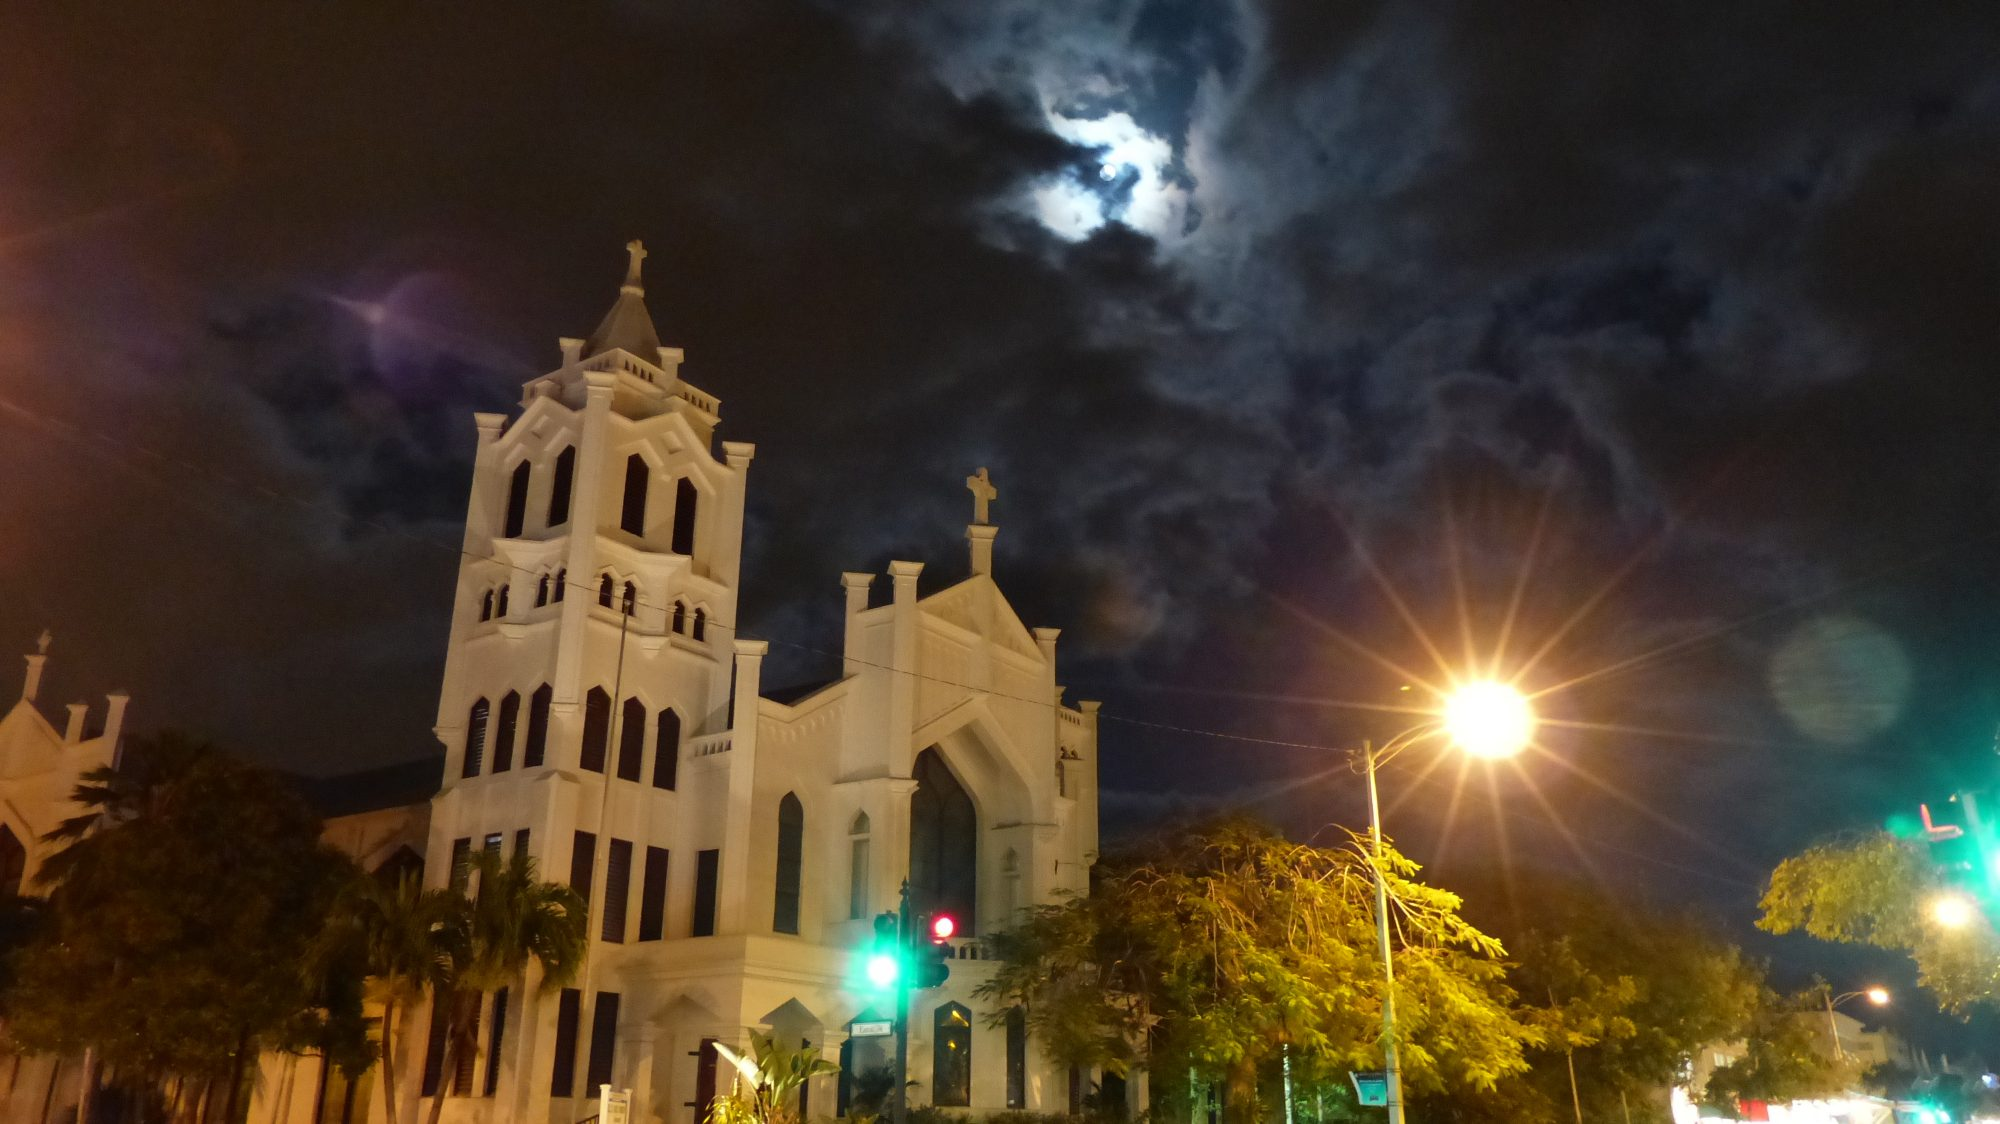 More: Best Coastal Ghost Tours If you're into the paranormal, then you've come to the right place. Key West is home to its fair share of ghoulish haunts like the town's oldest graveyard, historic Victorian mansions and more. The local ghost hunters say e